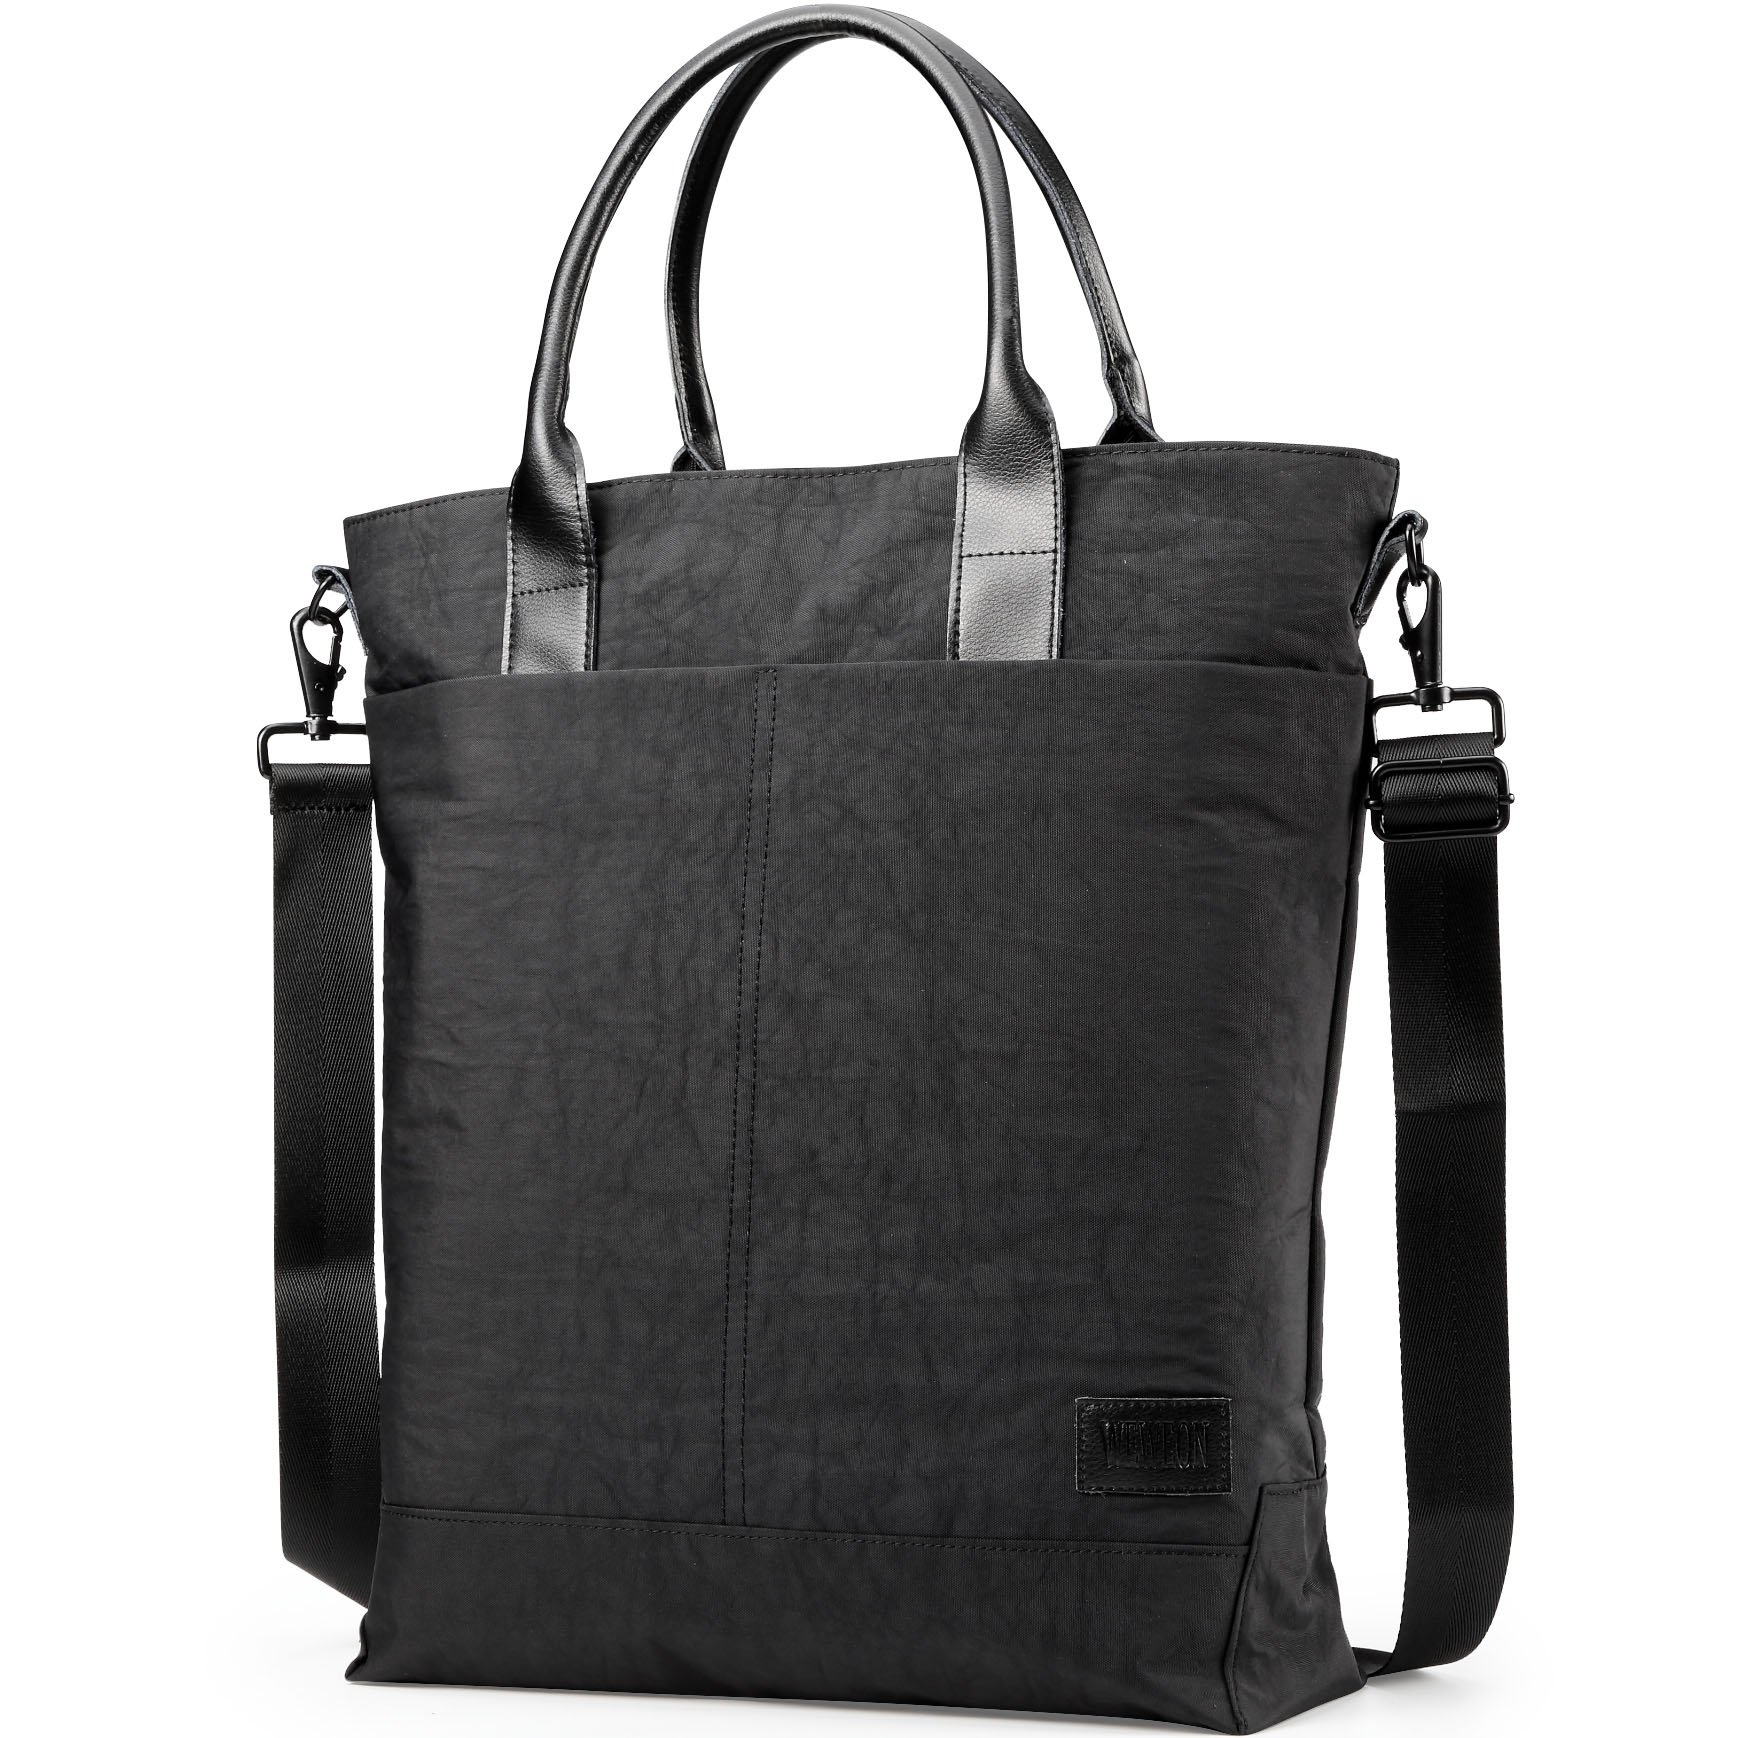 Laptop Tote Handbag with Leather Handle, Business Tote Work Bag, Travel Tote Black